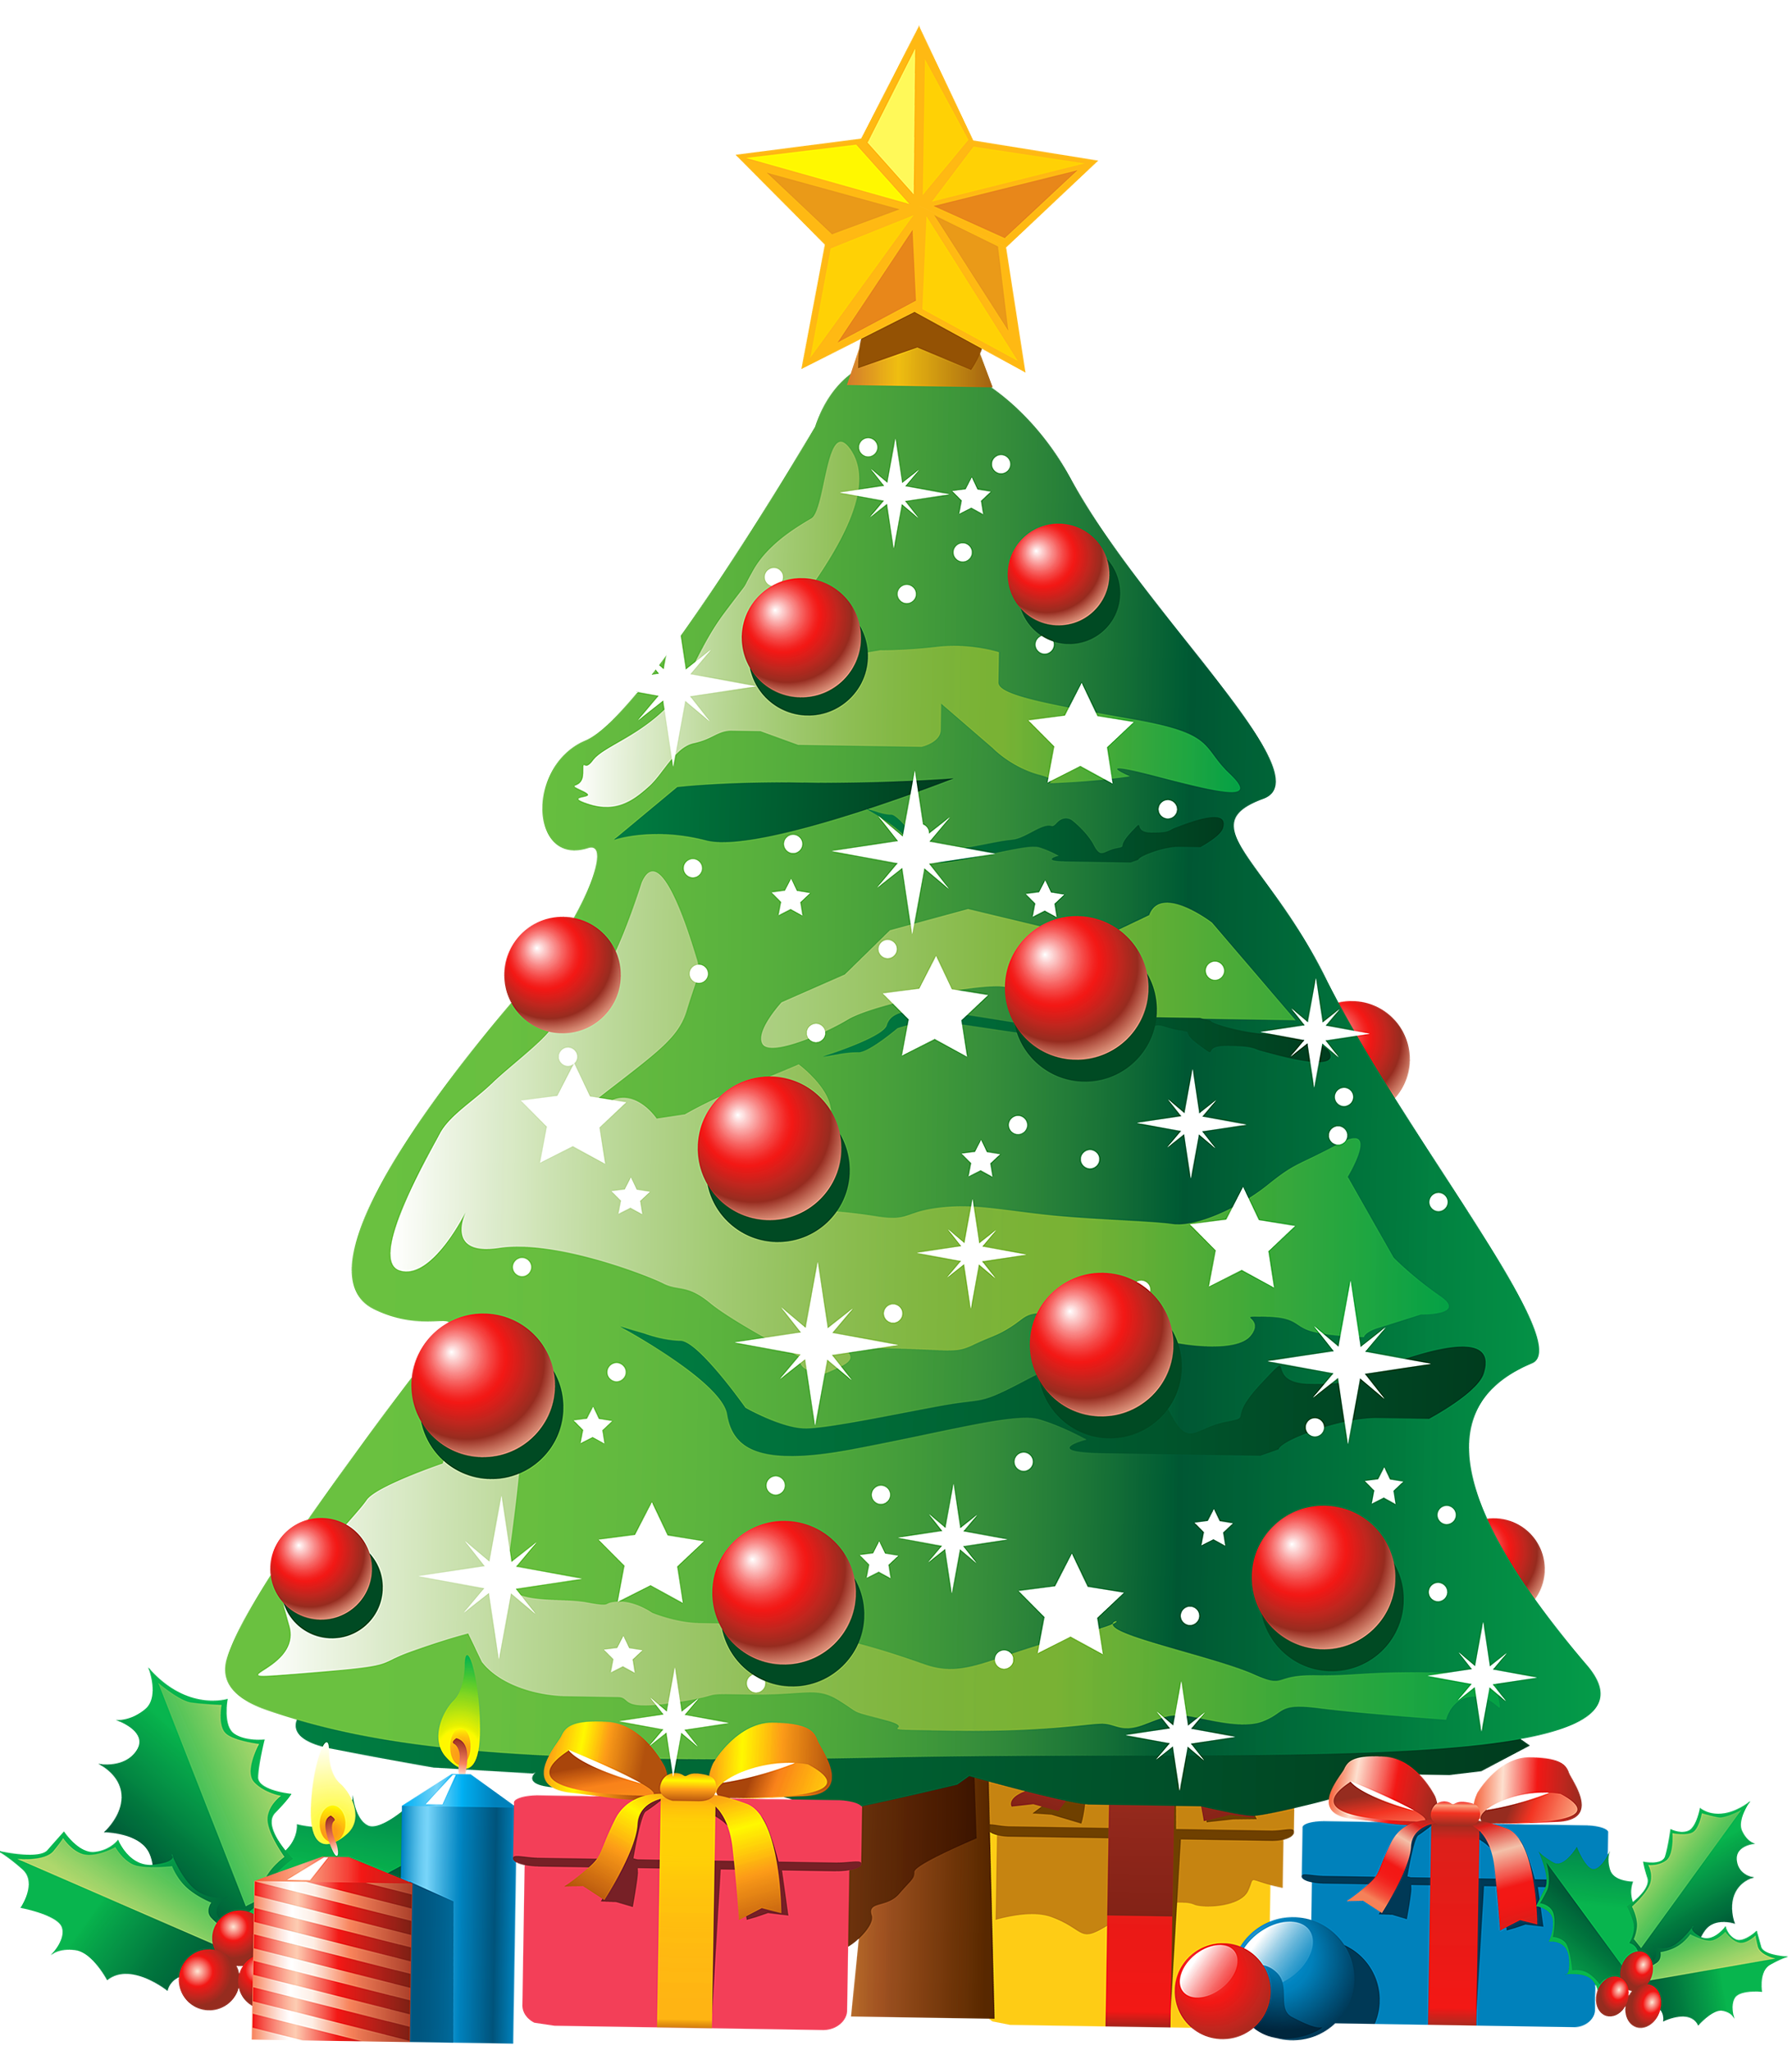 Christmas Tree Clipart Png & Free Christmas Tree Clipart ...